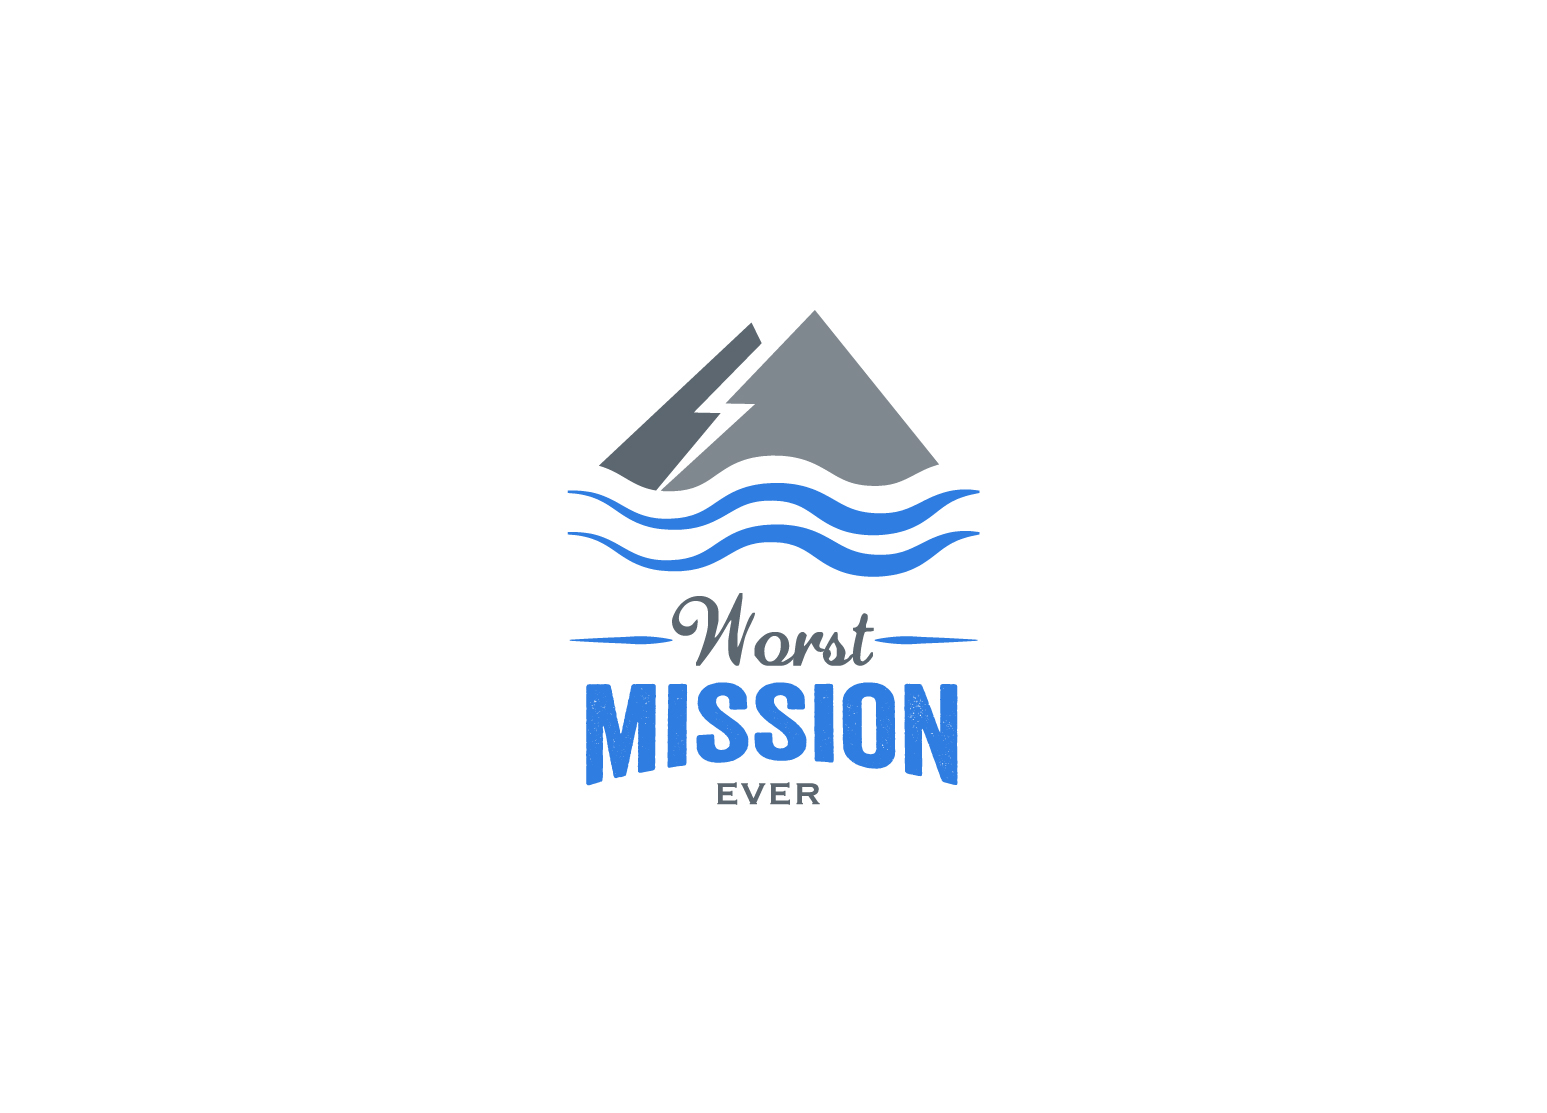 WorstMissionEver-logo-03